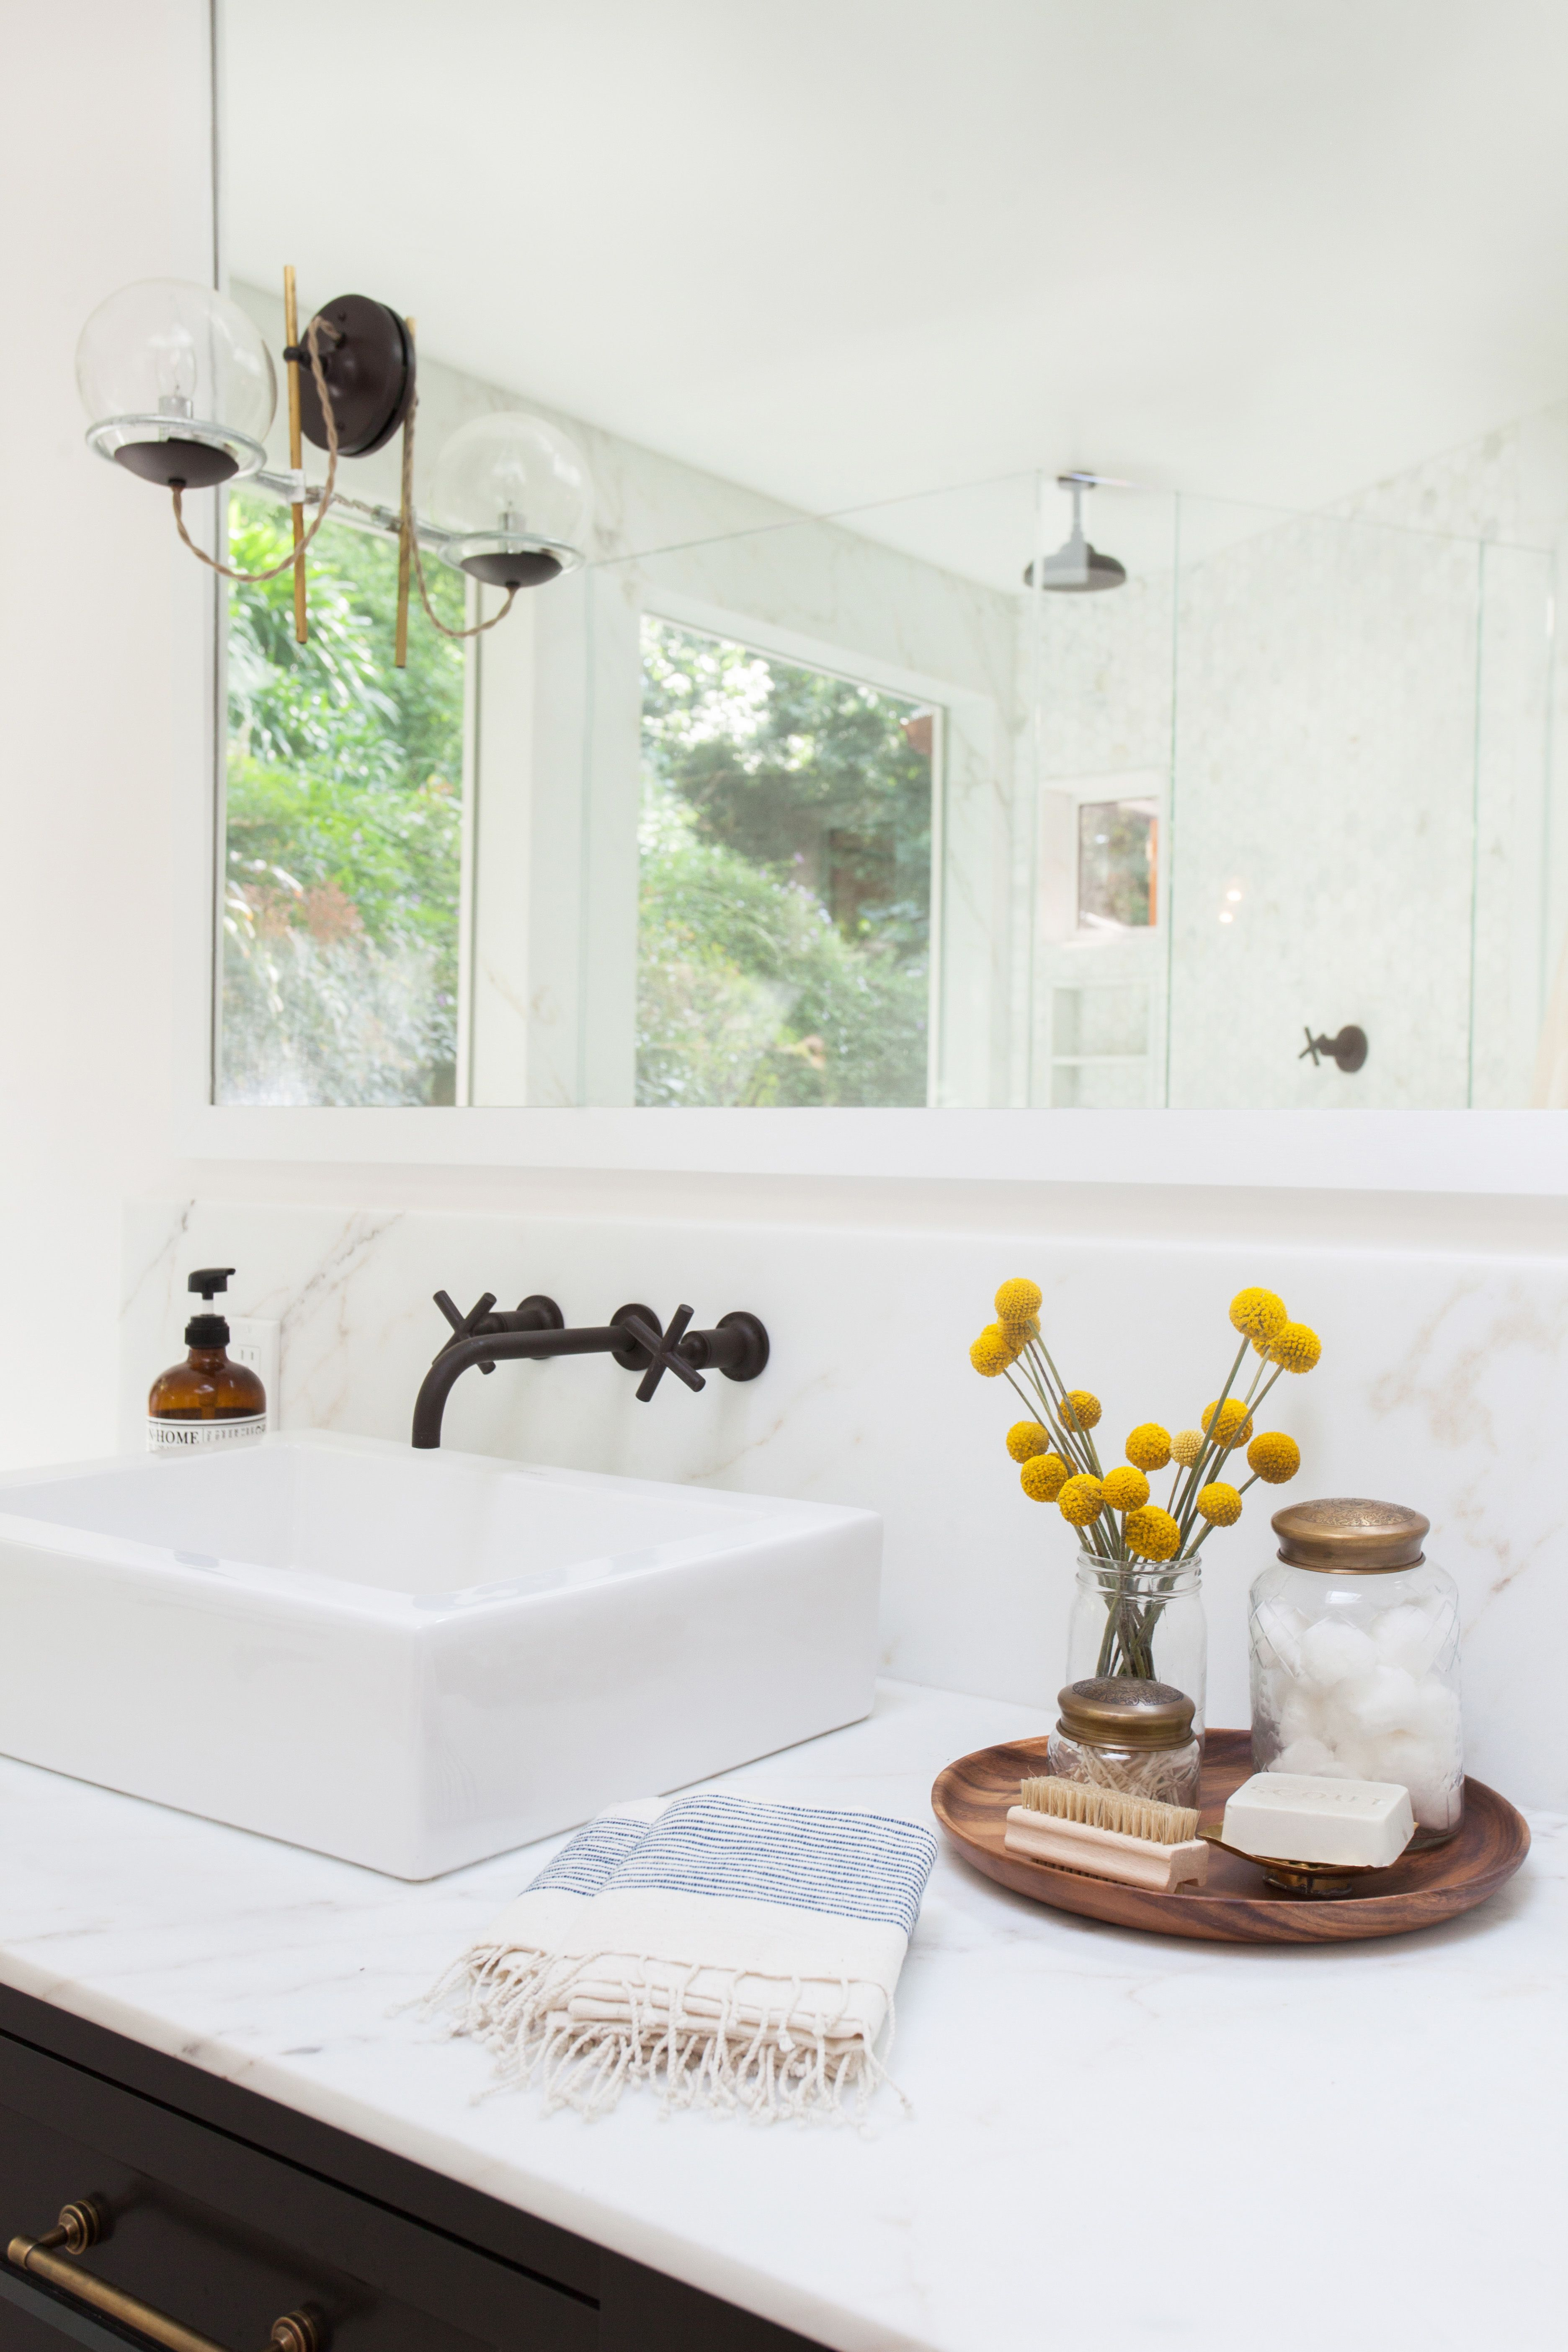 5 big ideas for an amazing bathroom remodel | Bath, Amber and Interiors